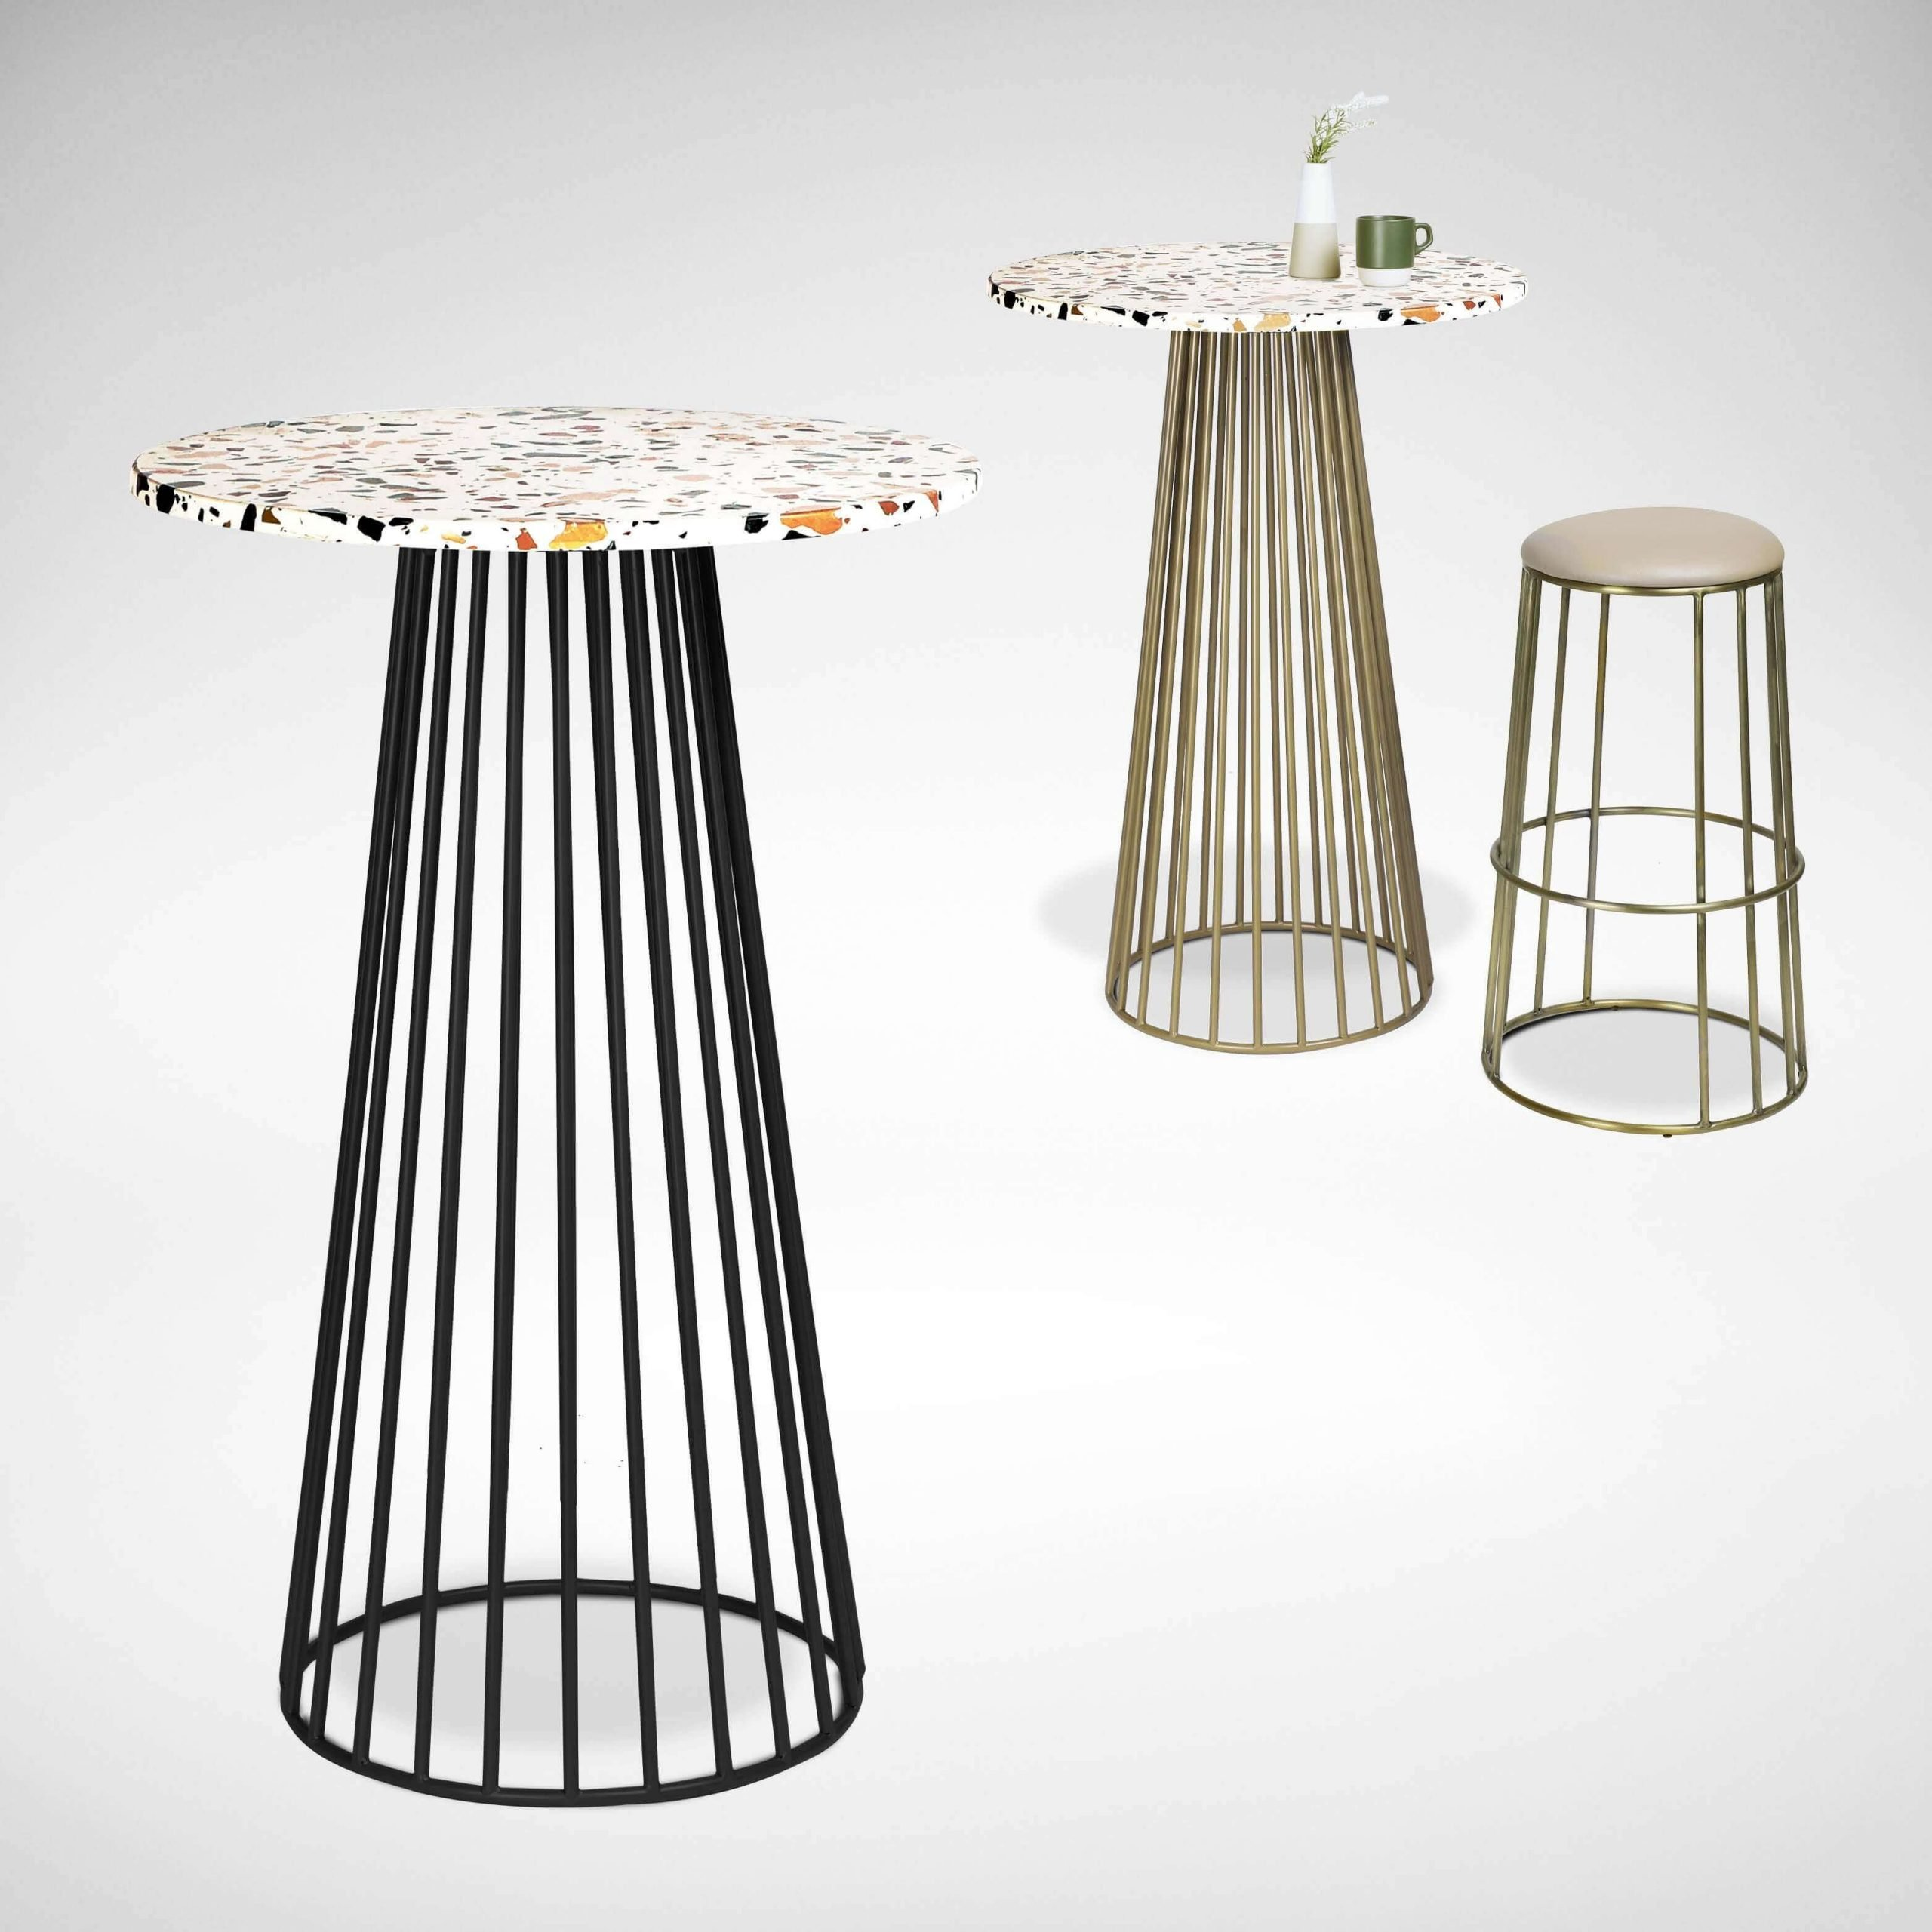 Terrazzo Tiled Cafe Tables with Coloured Stands - Comfort Furniture